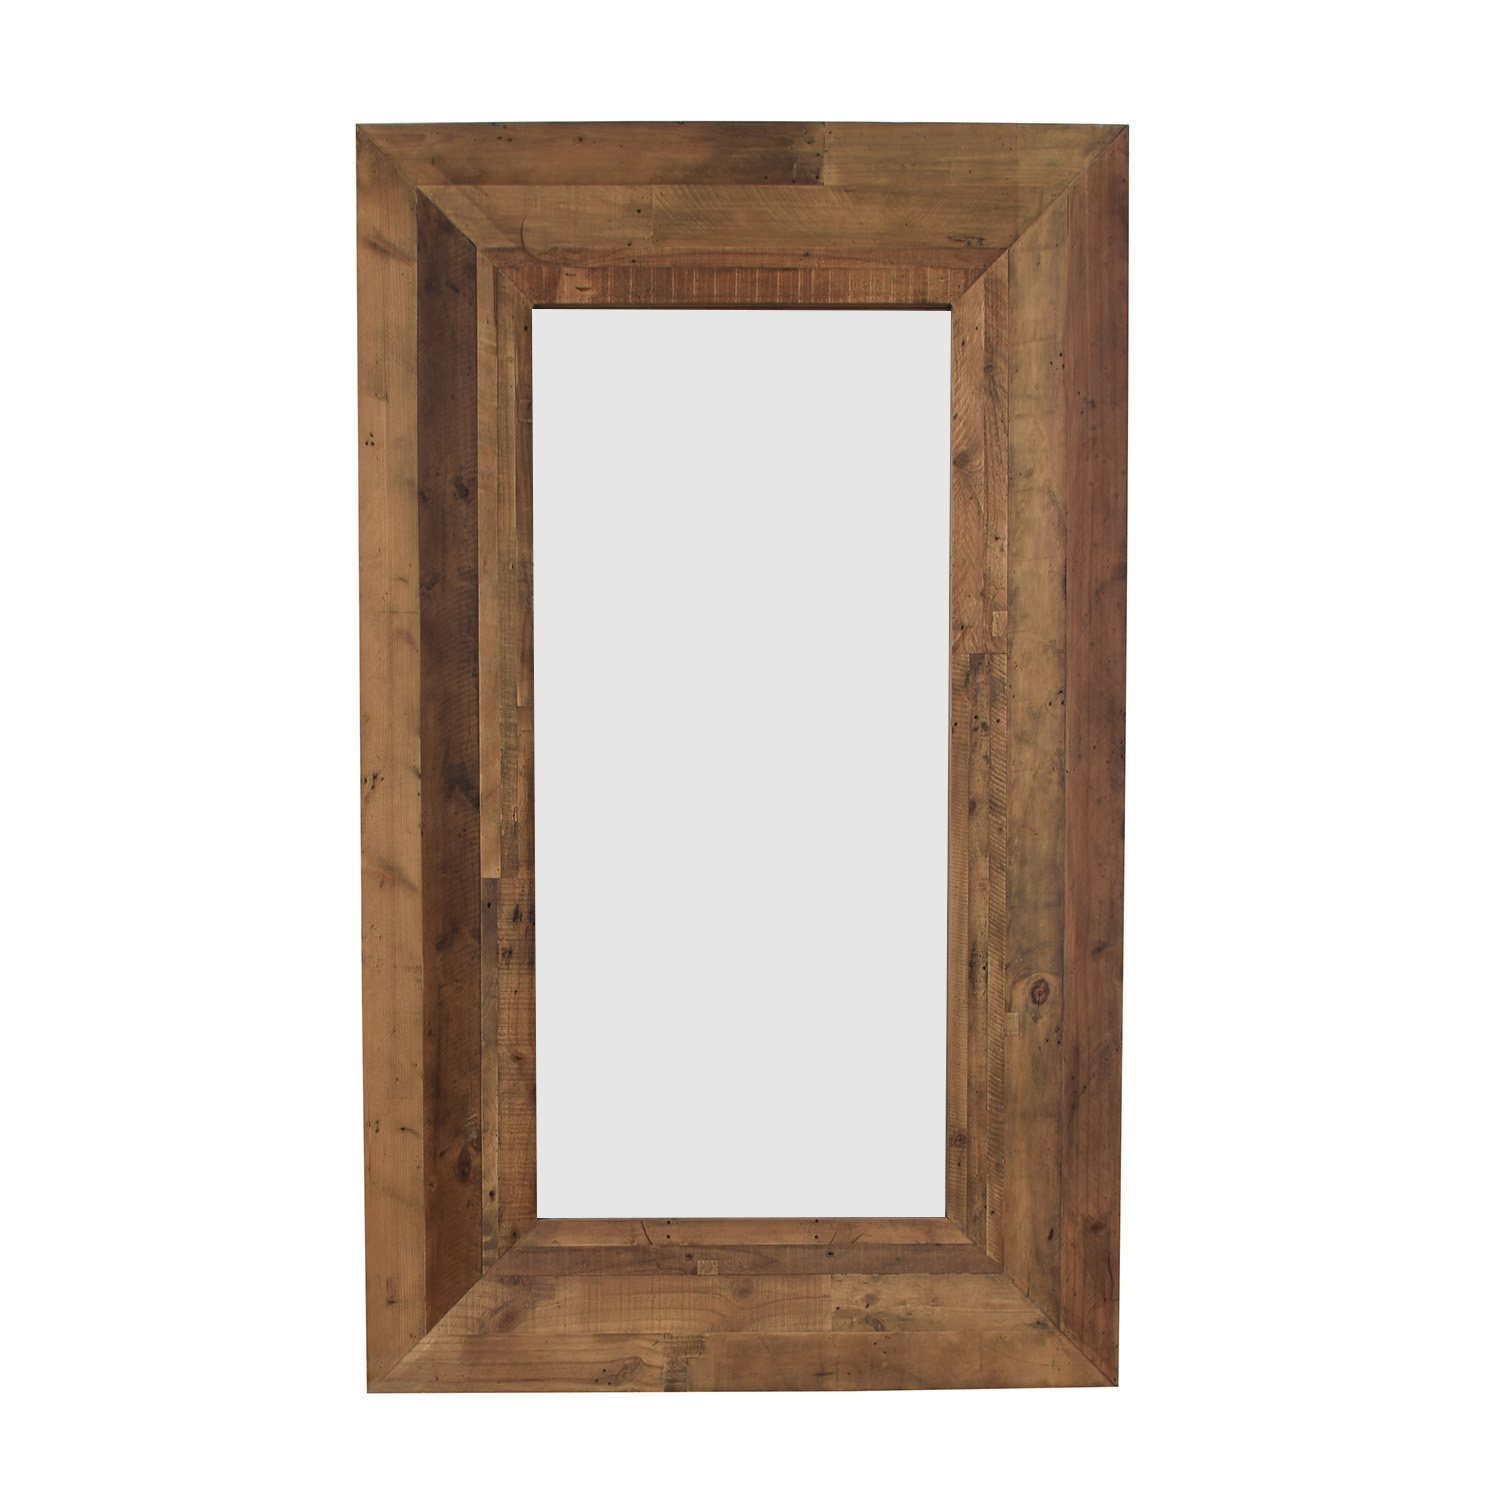 shop ABC Carpet & Home ABC Carpet & Home Oversized Wood Framed Floor Mirror online